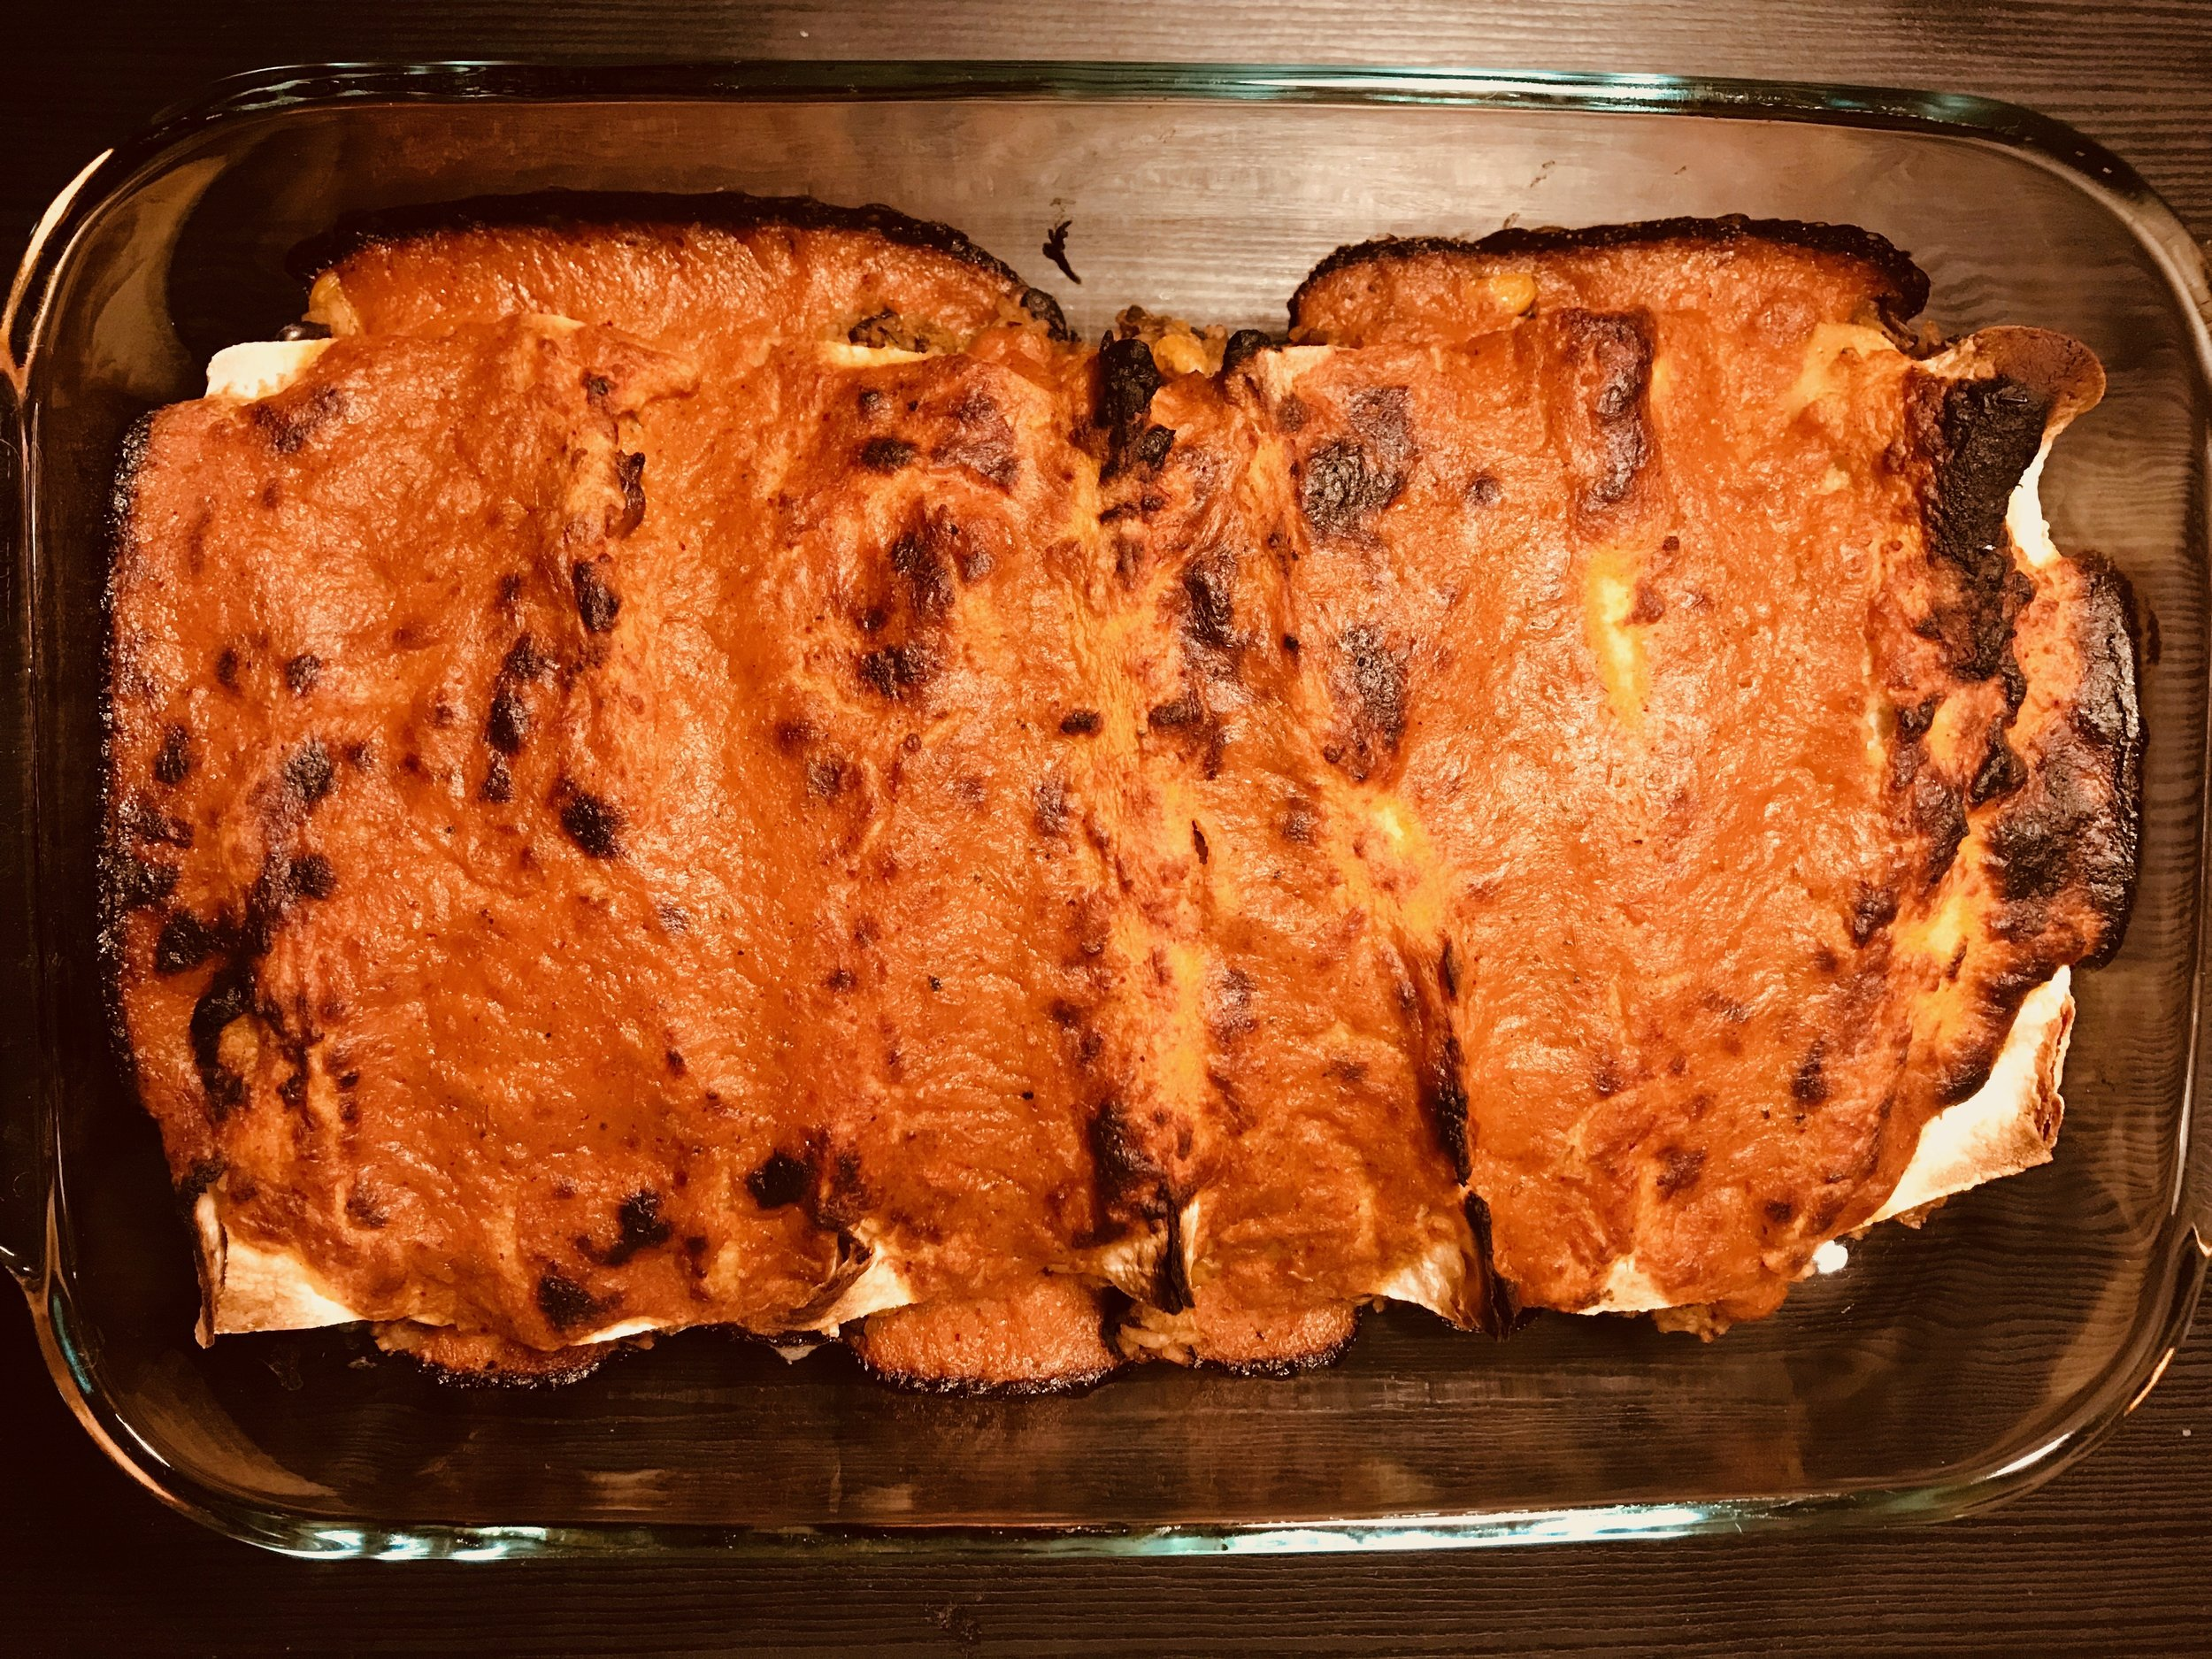 vegan enchiladas - w/ roasted red pepper and tomato sauce